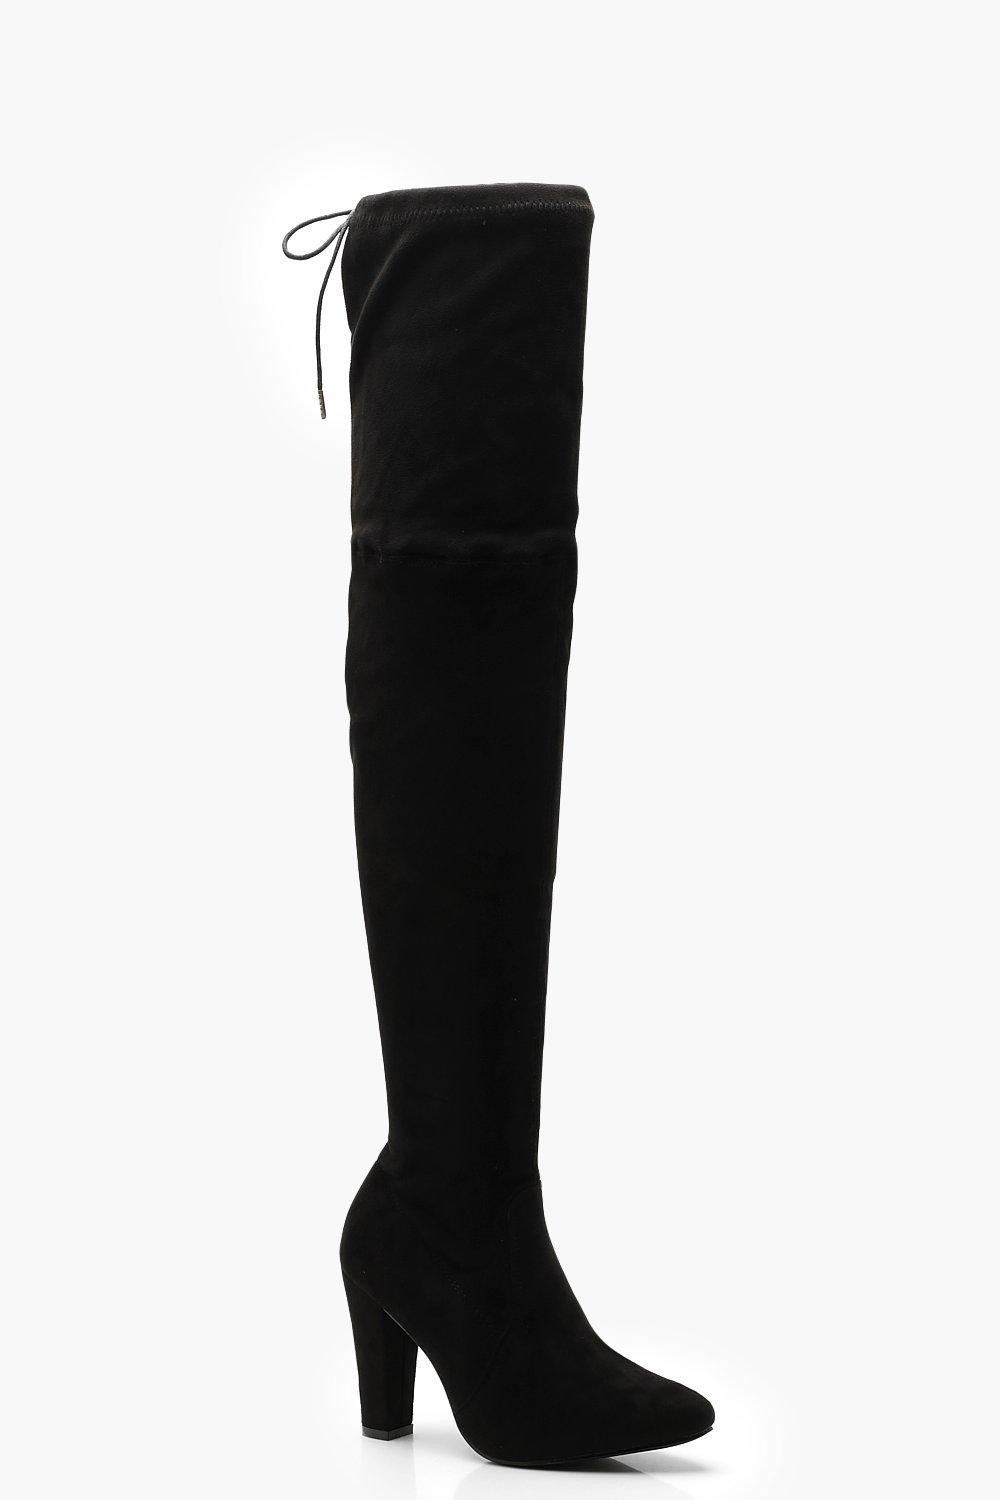 67f5664fe9 Womens Black Block Heel Thigh High Boots. Hover to zoom